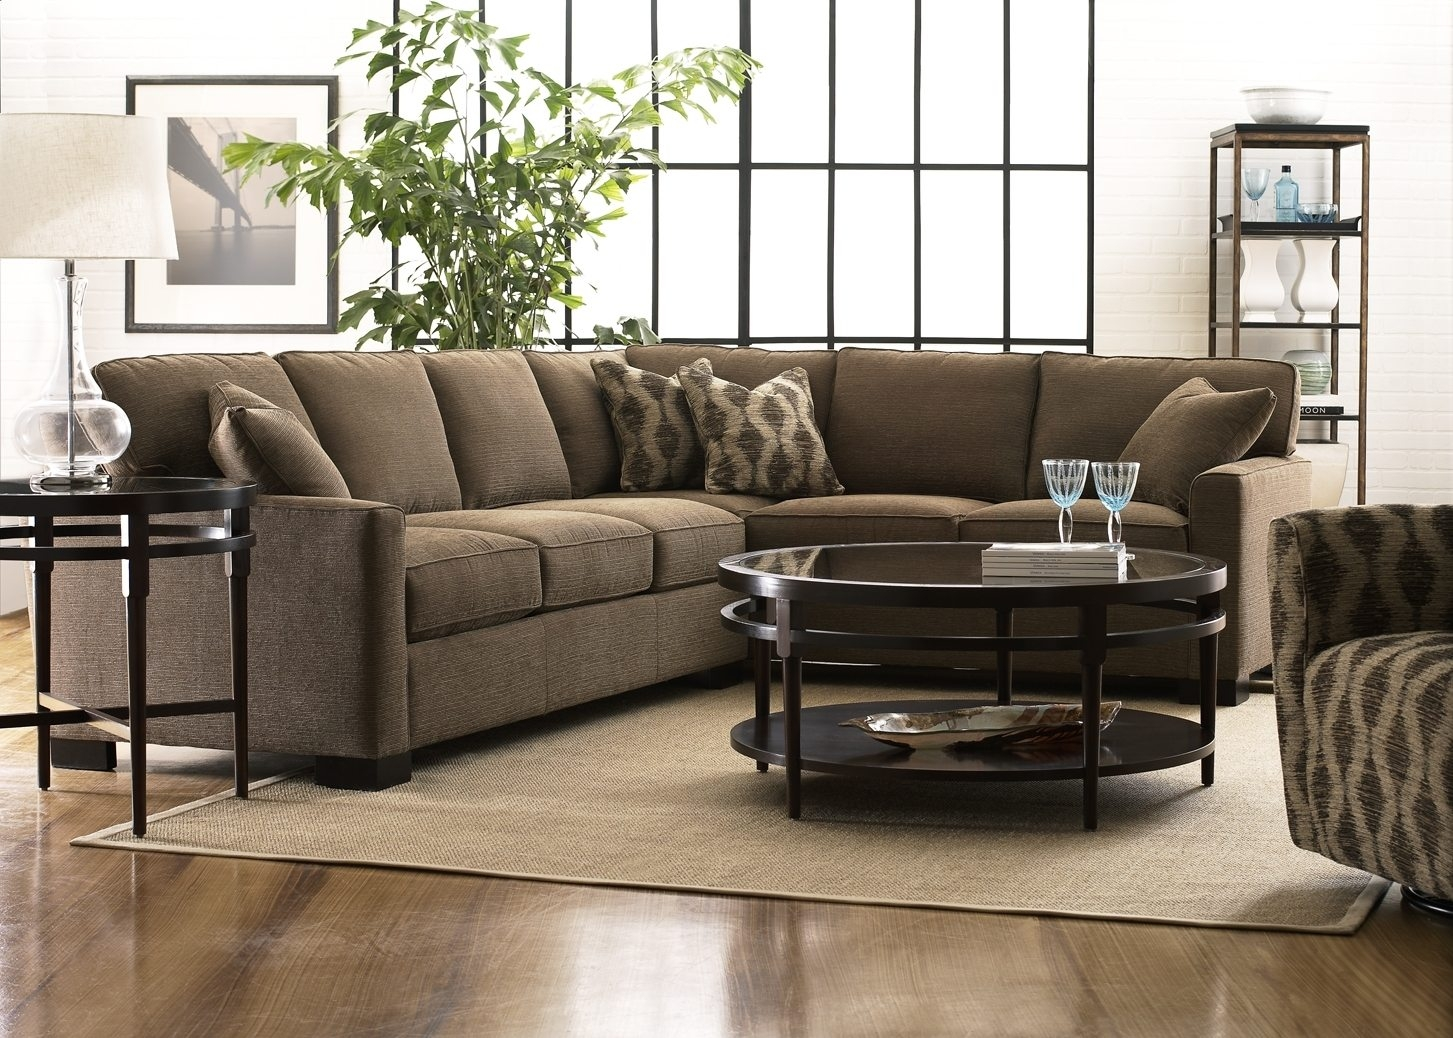 Excellent Sectional Sofas For Small Living Rooms 67 On Berkline Throughout Berkline Sectional Sofa (#11 of 12)